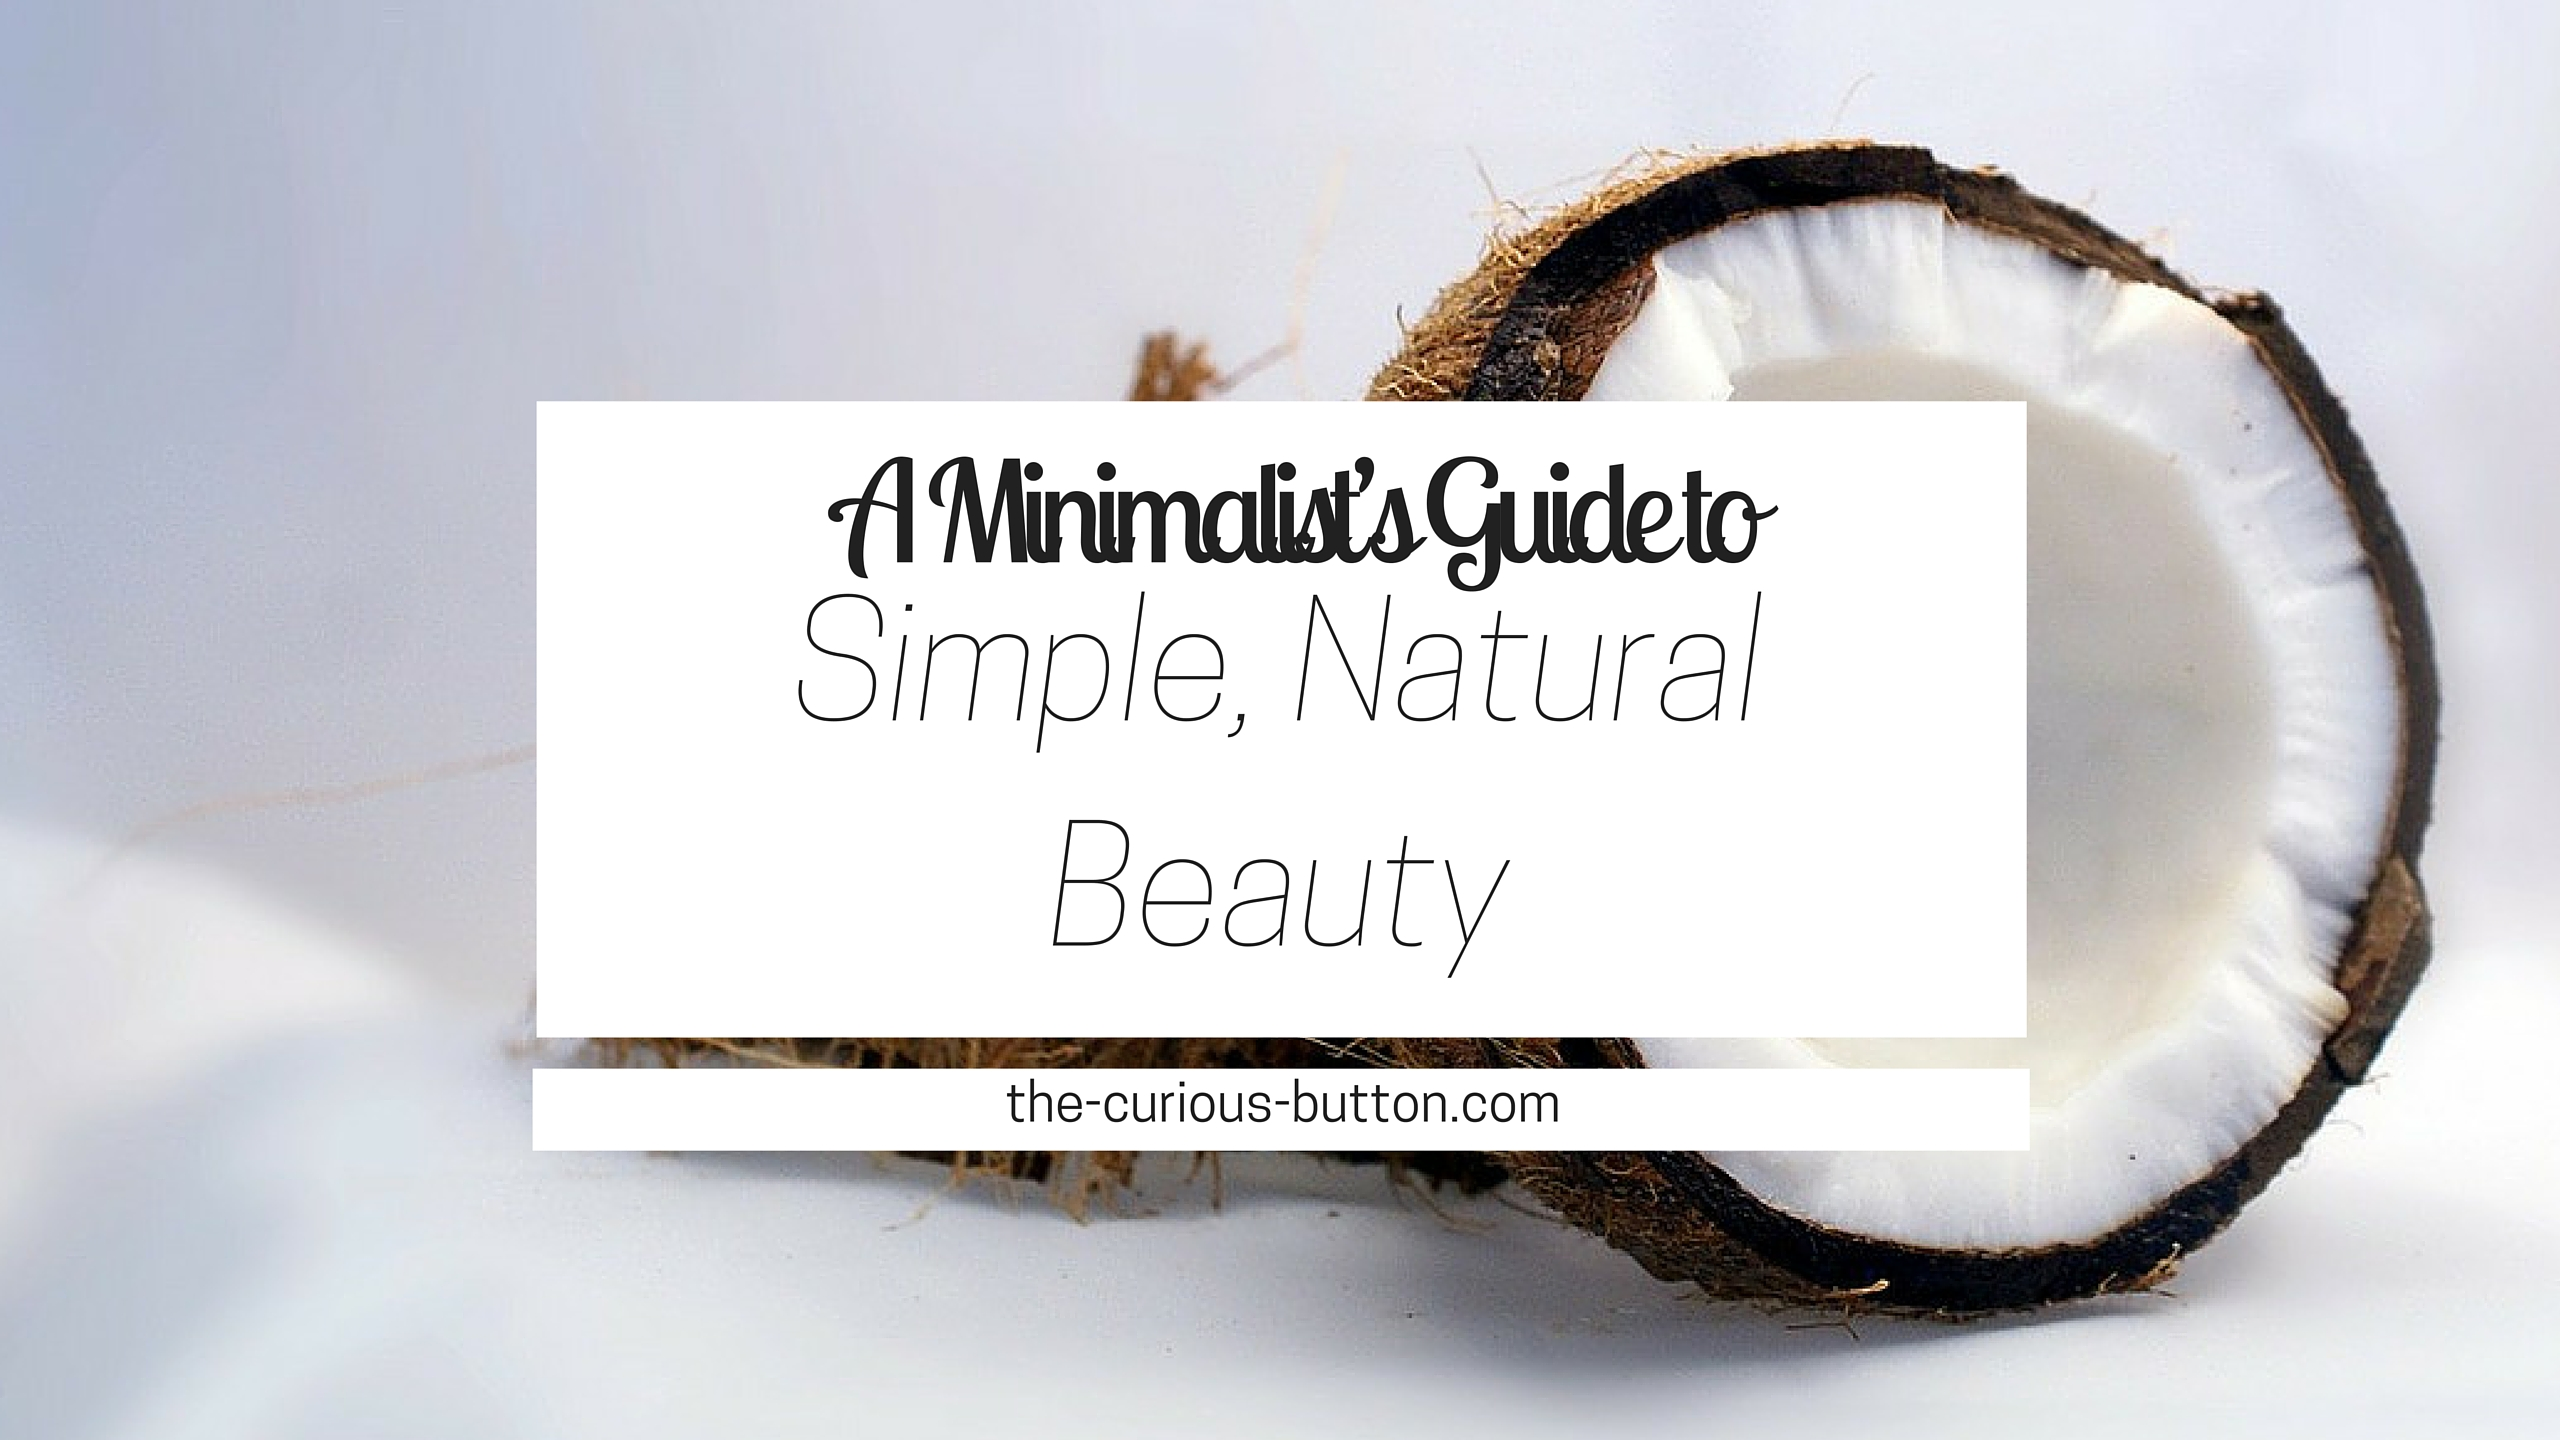 A Minimalist's Guide to Simple, Natural Beauty | The Curious Button blog | Find out how to use coconut oil, castile soap, apple cider vinegar, and essential oils to benefit your hair and skin in your natural and simple beauty routine.